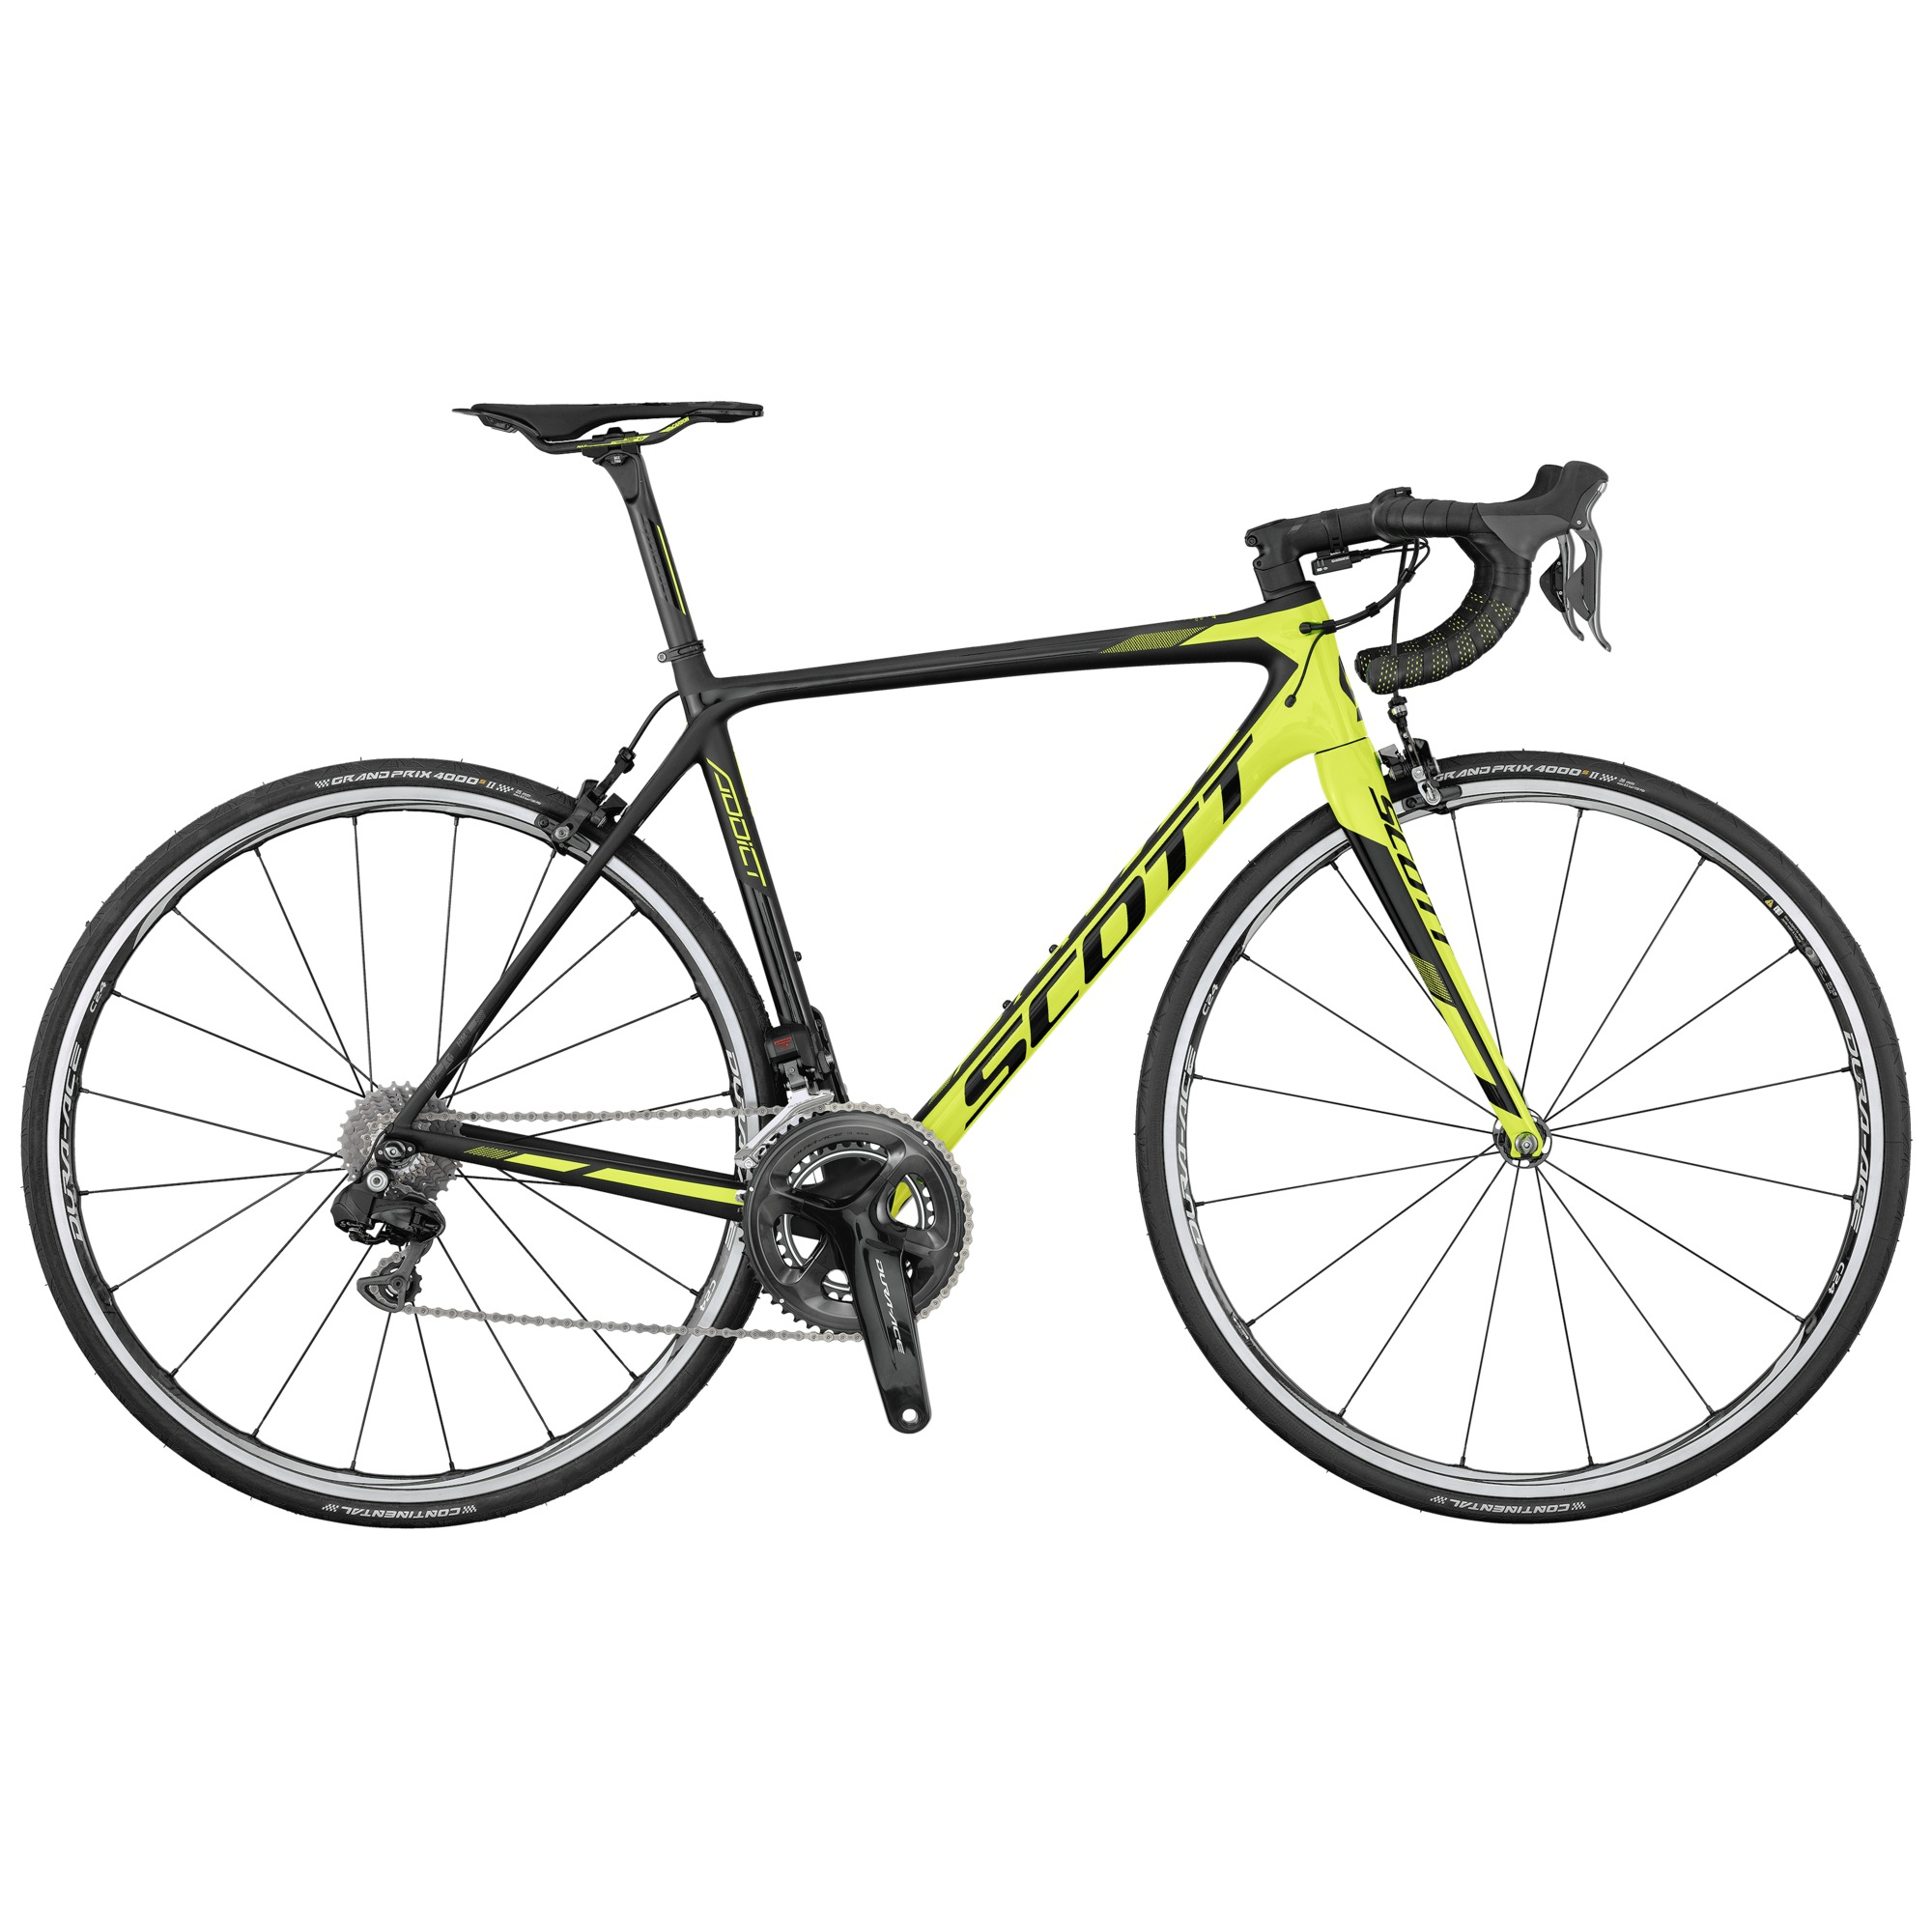 SCOTT Addict RC Di2 Bike